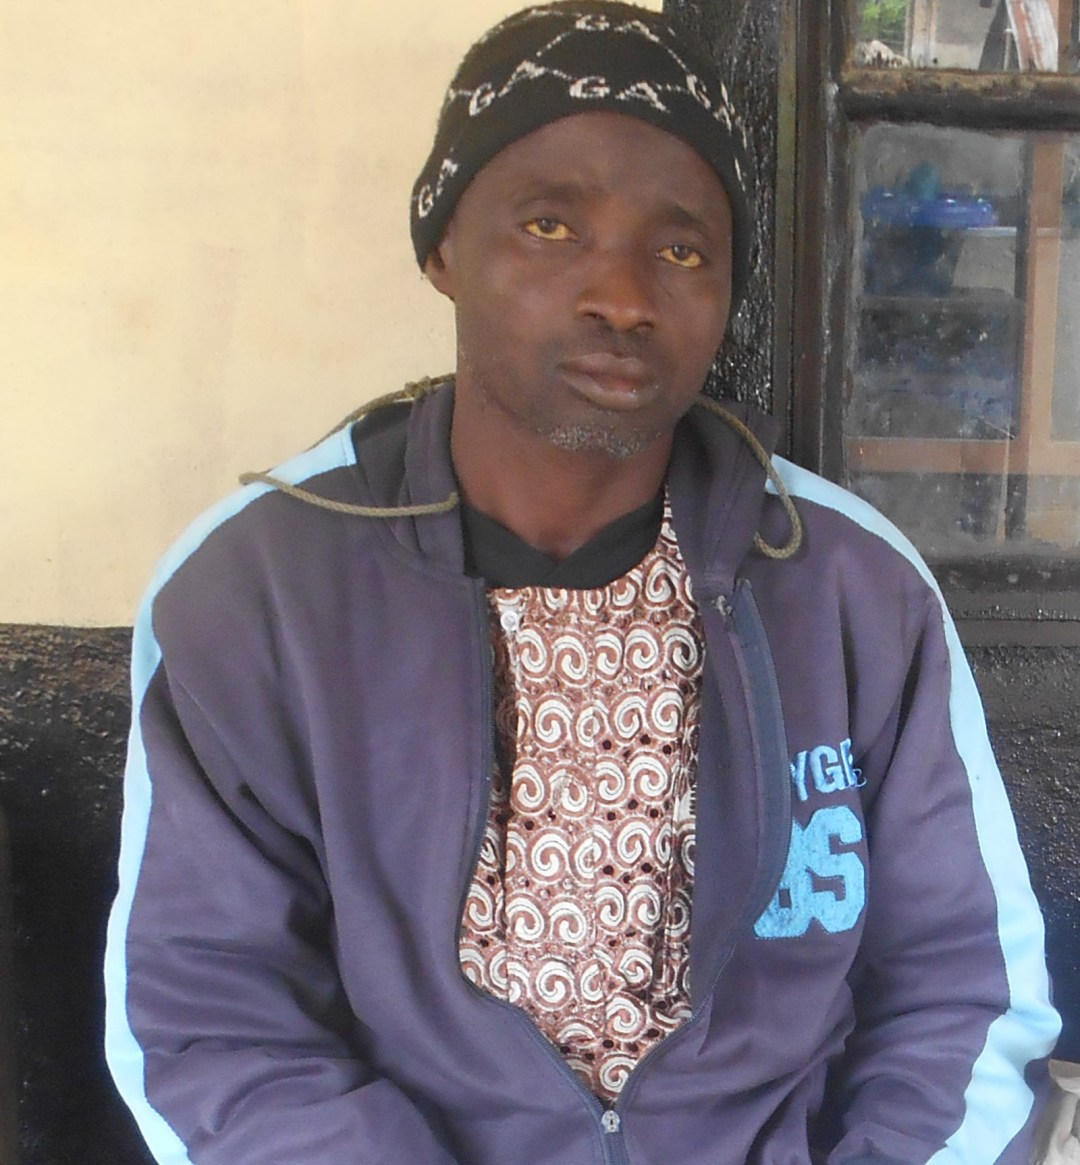 Man who received treatment at health clinic in Sierra Leone